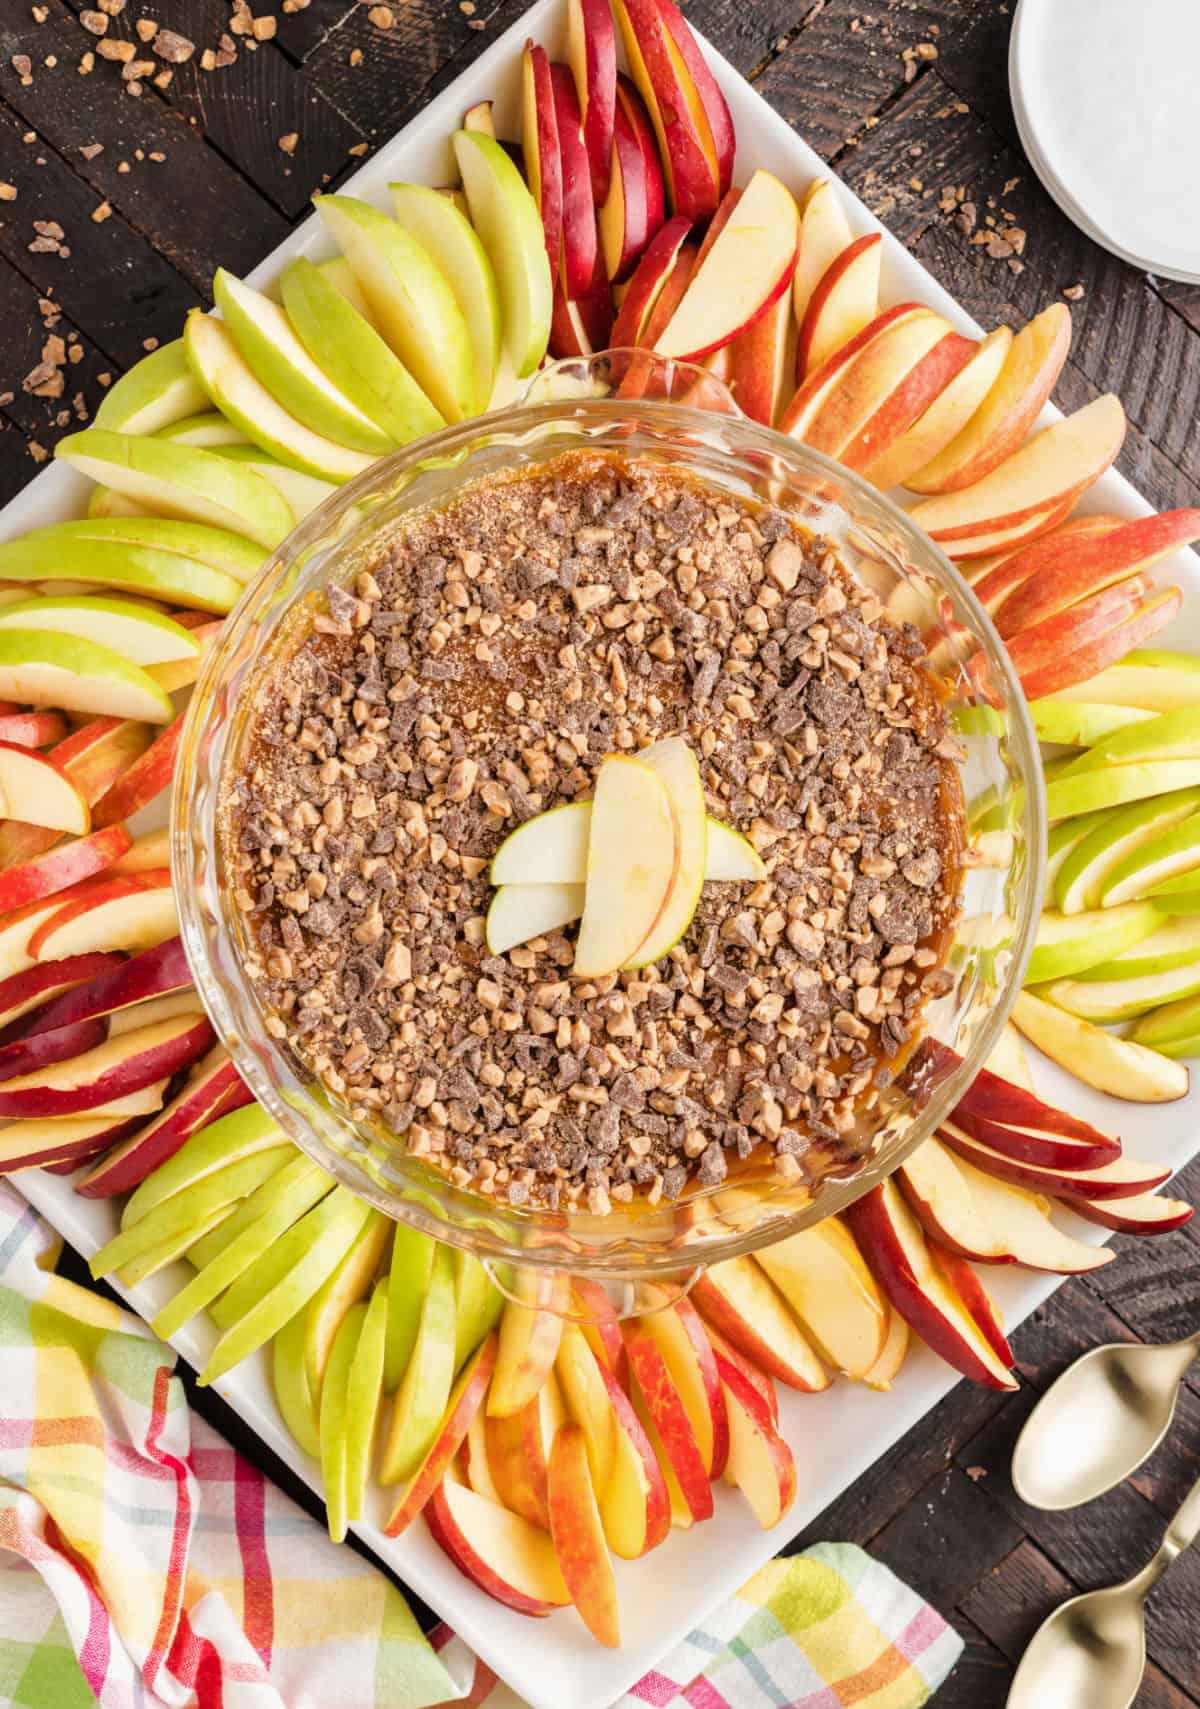 Caramel apple dip in pie plate with sliced apples for serving.